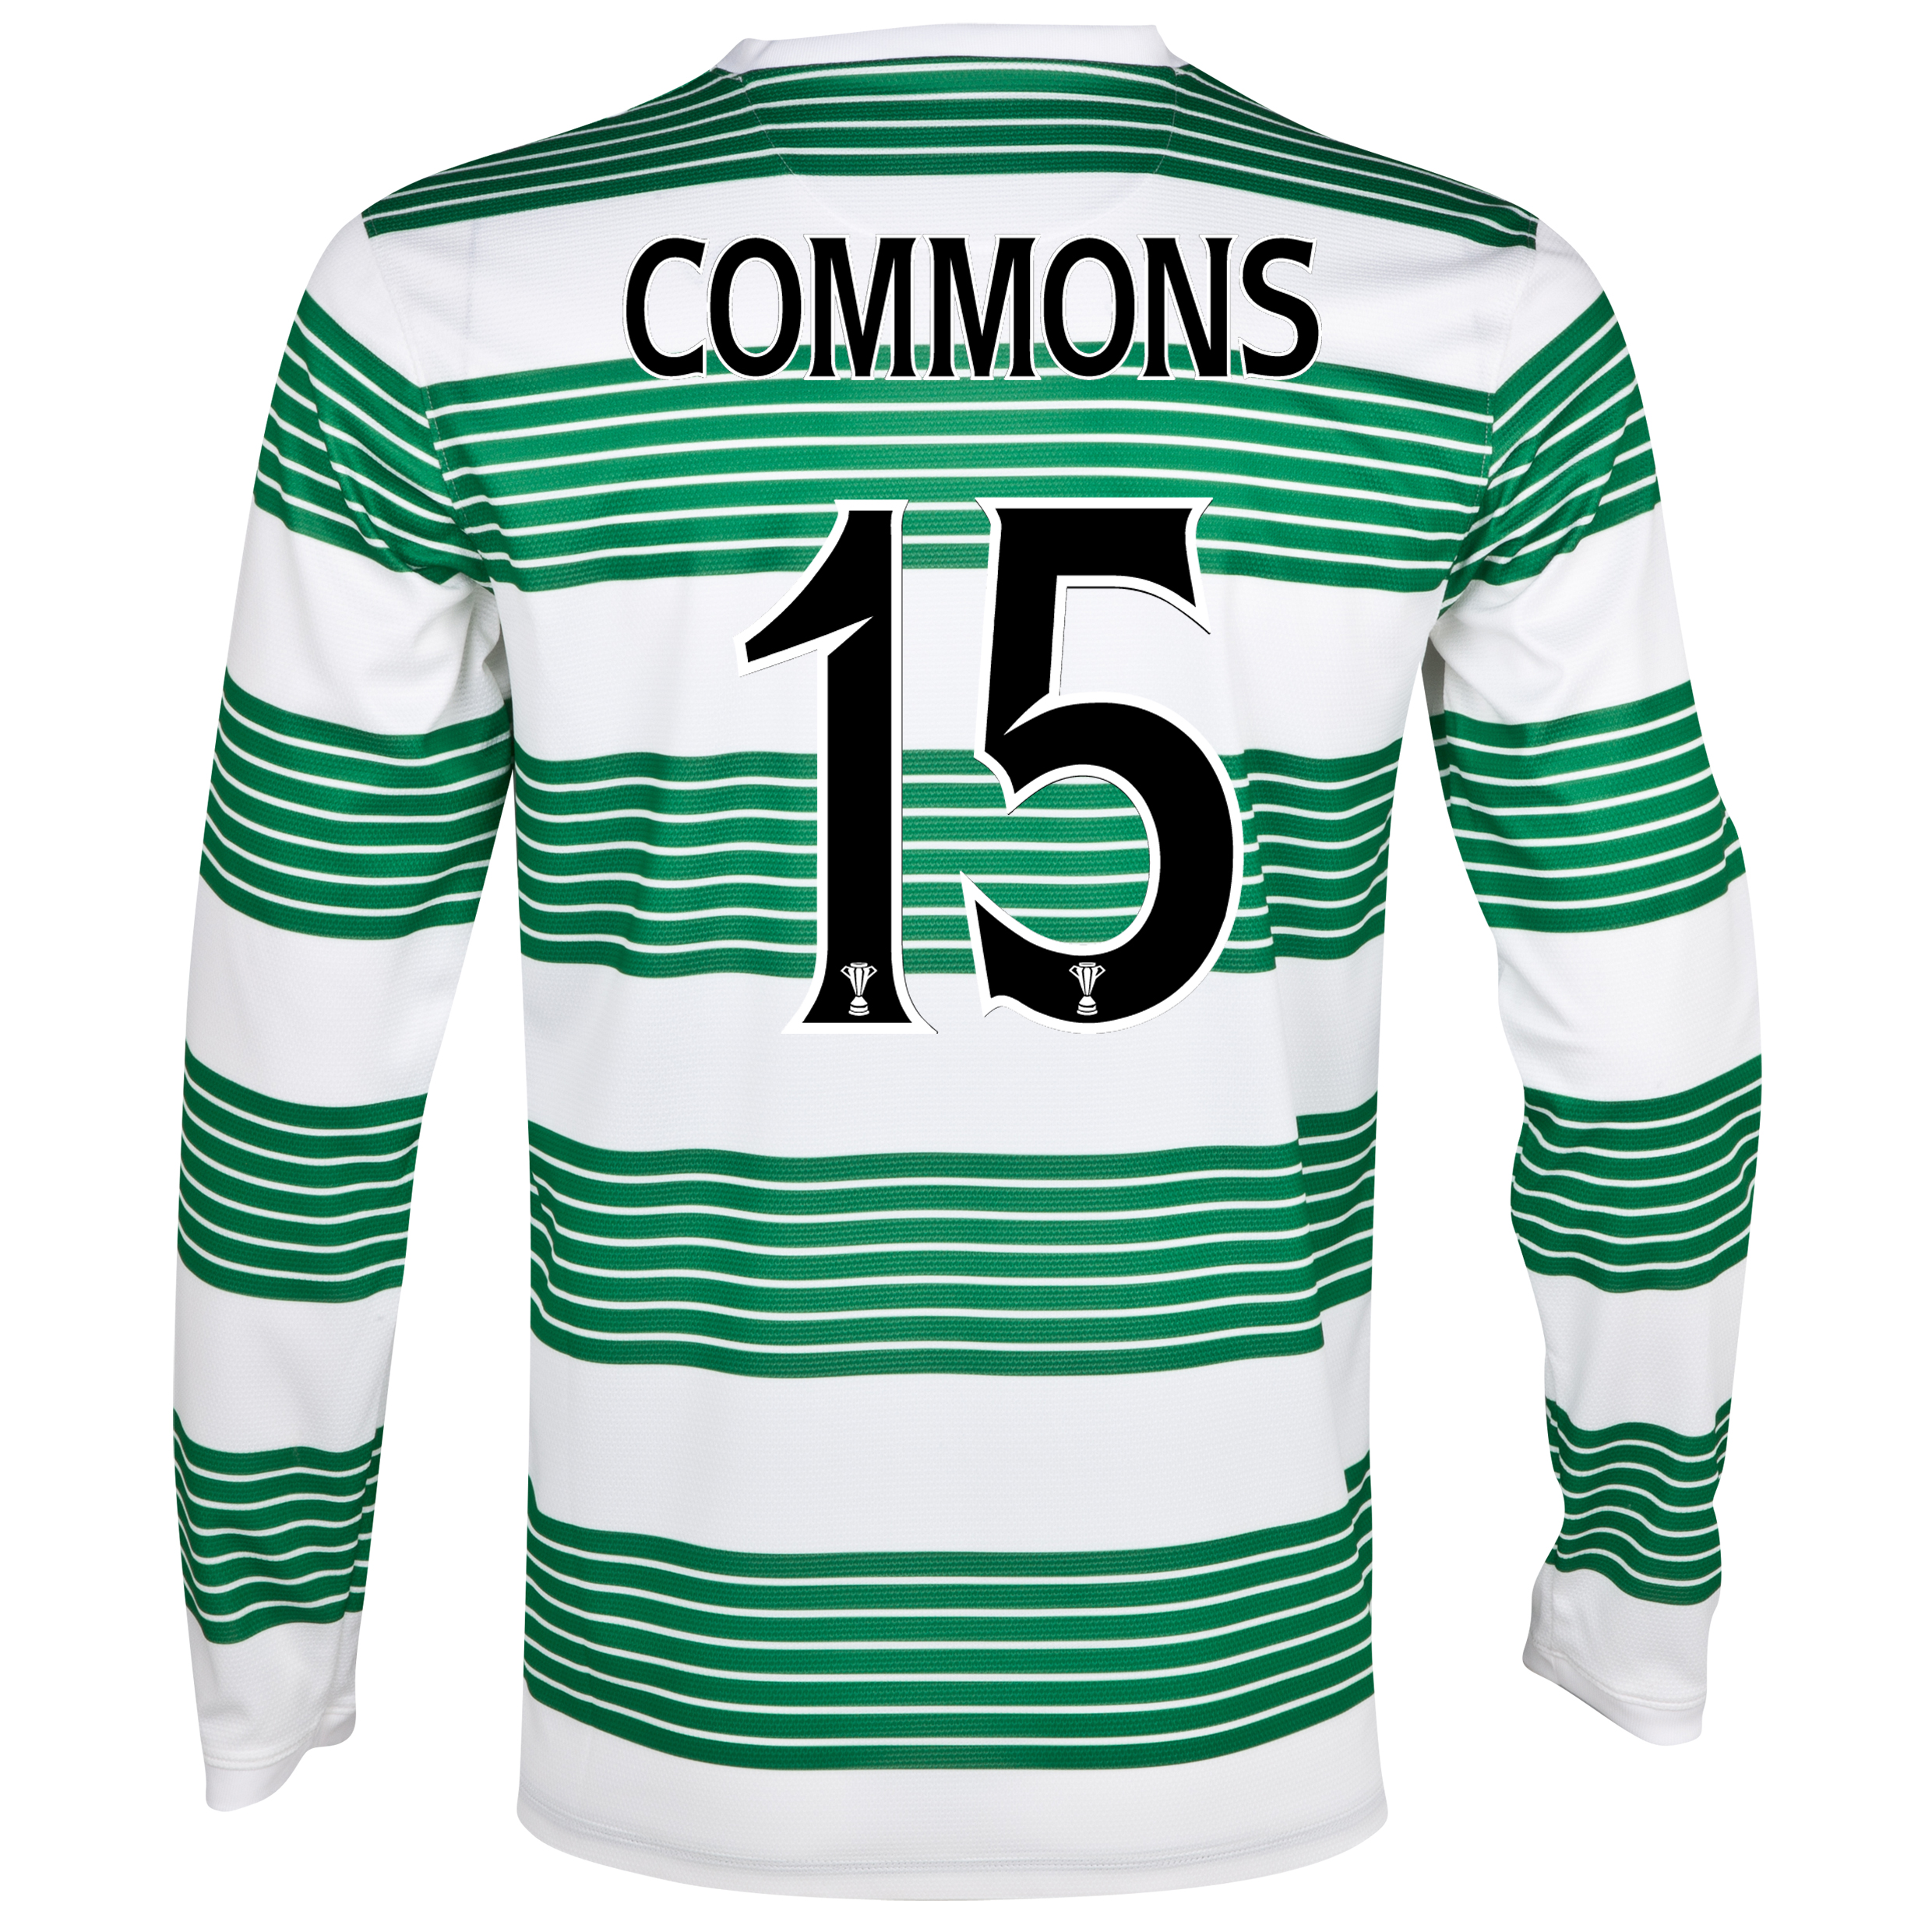 Celtic Home Shirt 2013/14 - L/S- Unsponsored with Commons 15 printing